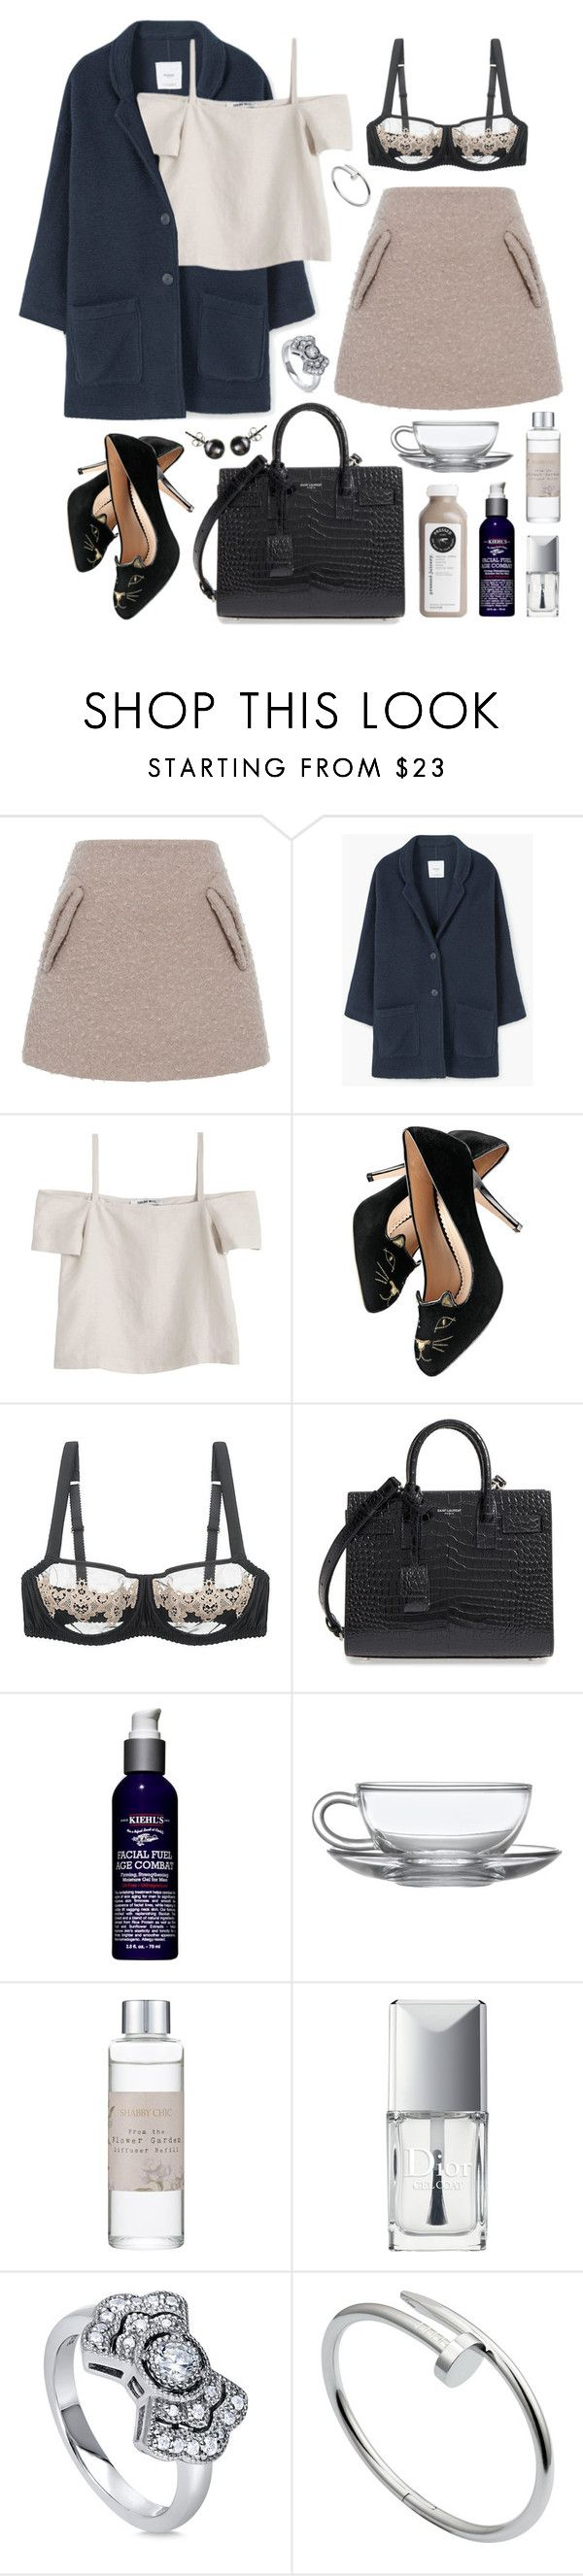 """""""Gioia"""" by sophiehackett ❤ liked on Polyvore featuring N°21, MANGO, Shaina Mote, Charlotte Olympia, Fleur of England, Yves Saint Laurent, Kiehl's, Shabby Chic, Christian Dior and BERRICLE"""